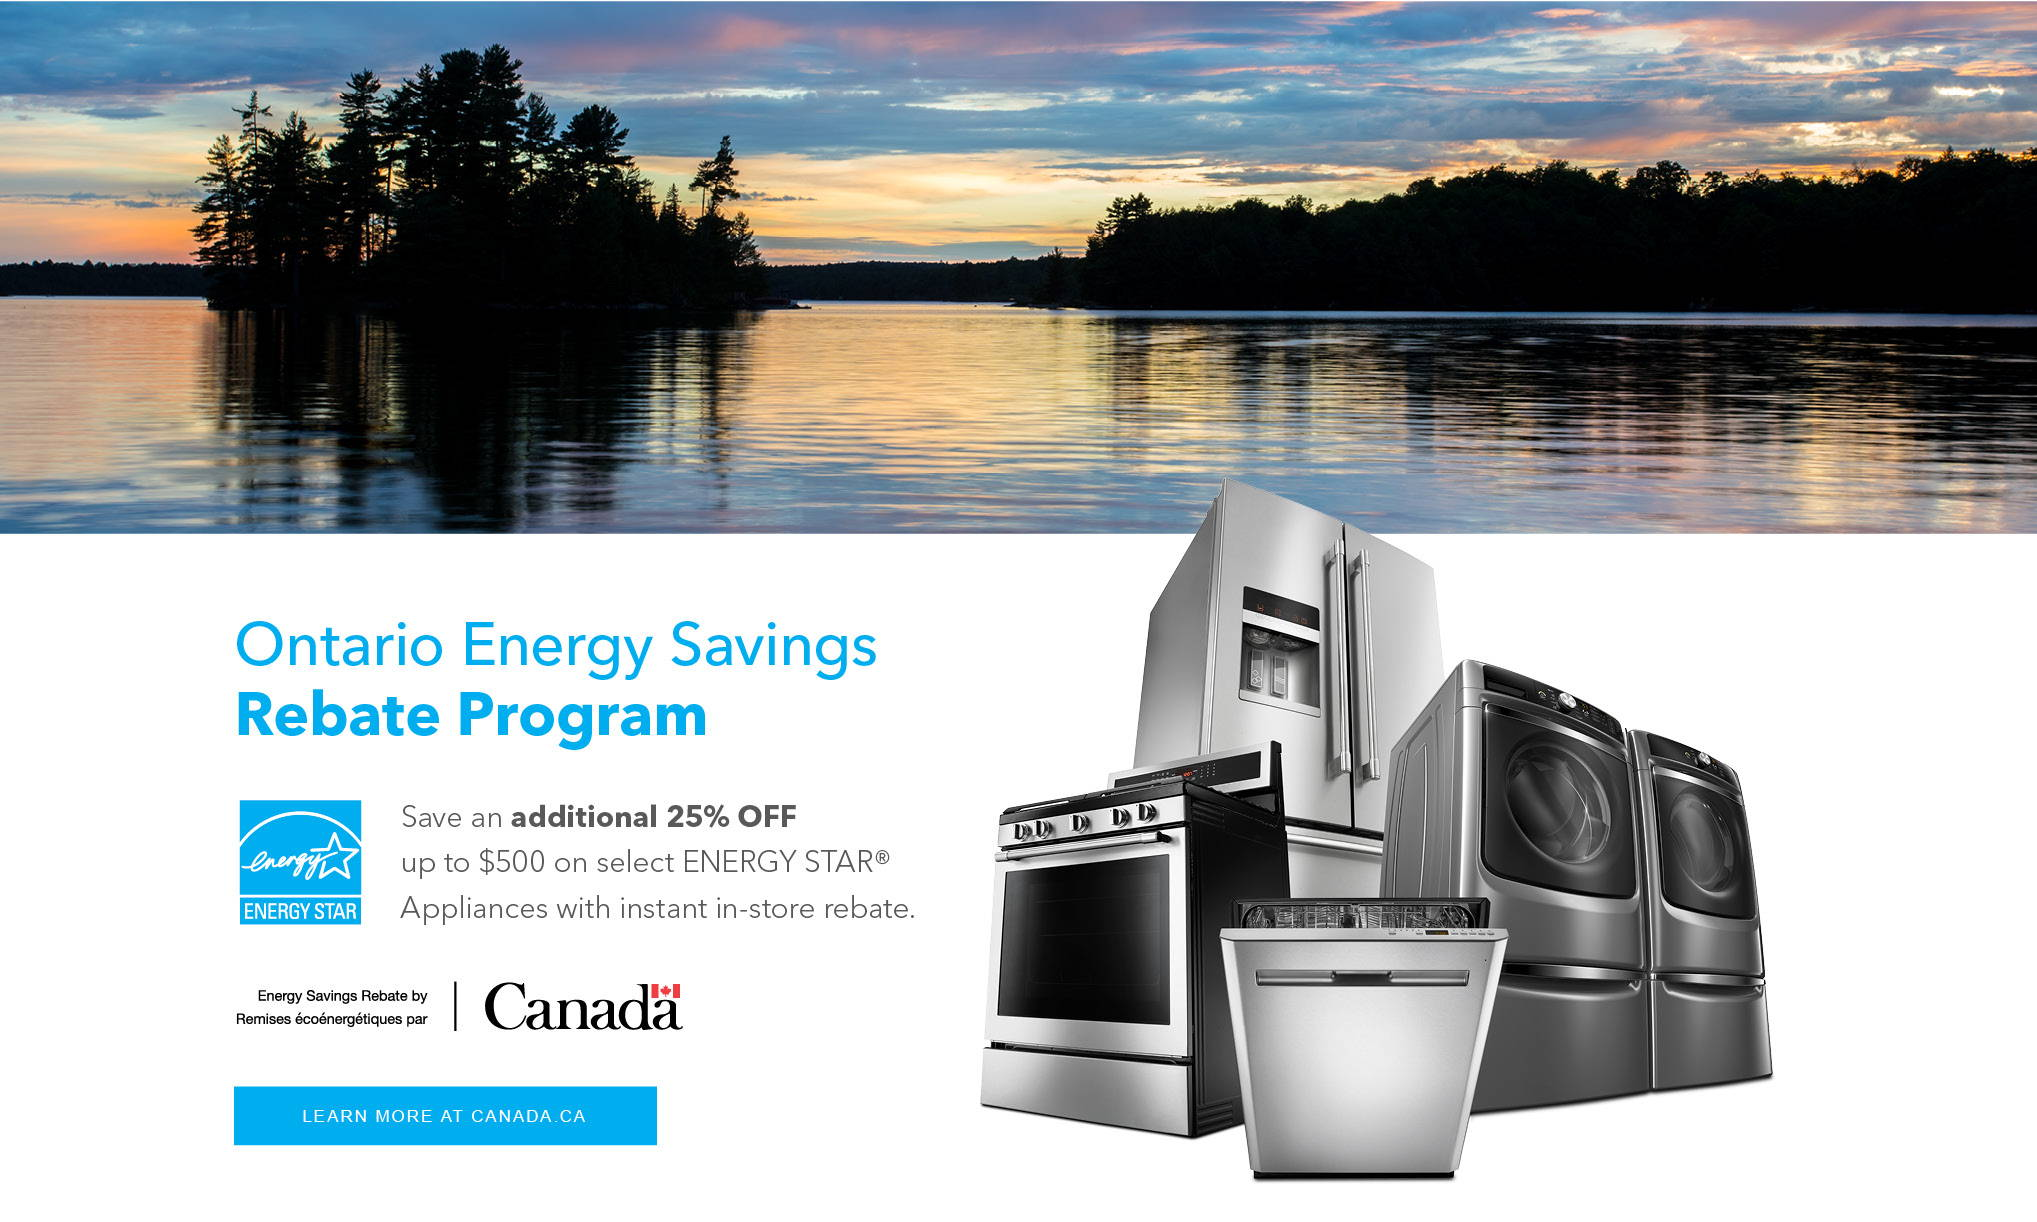 Ontario Energy Saving program